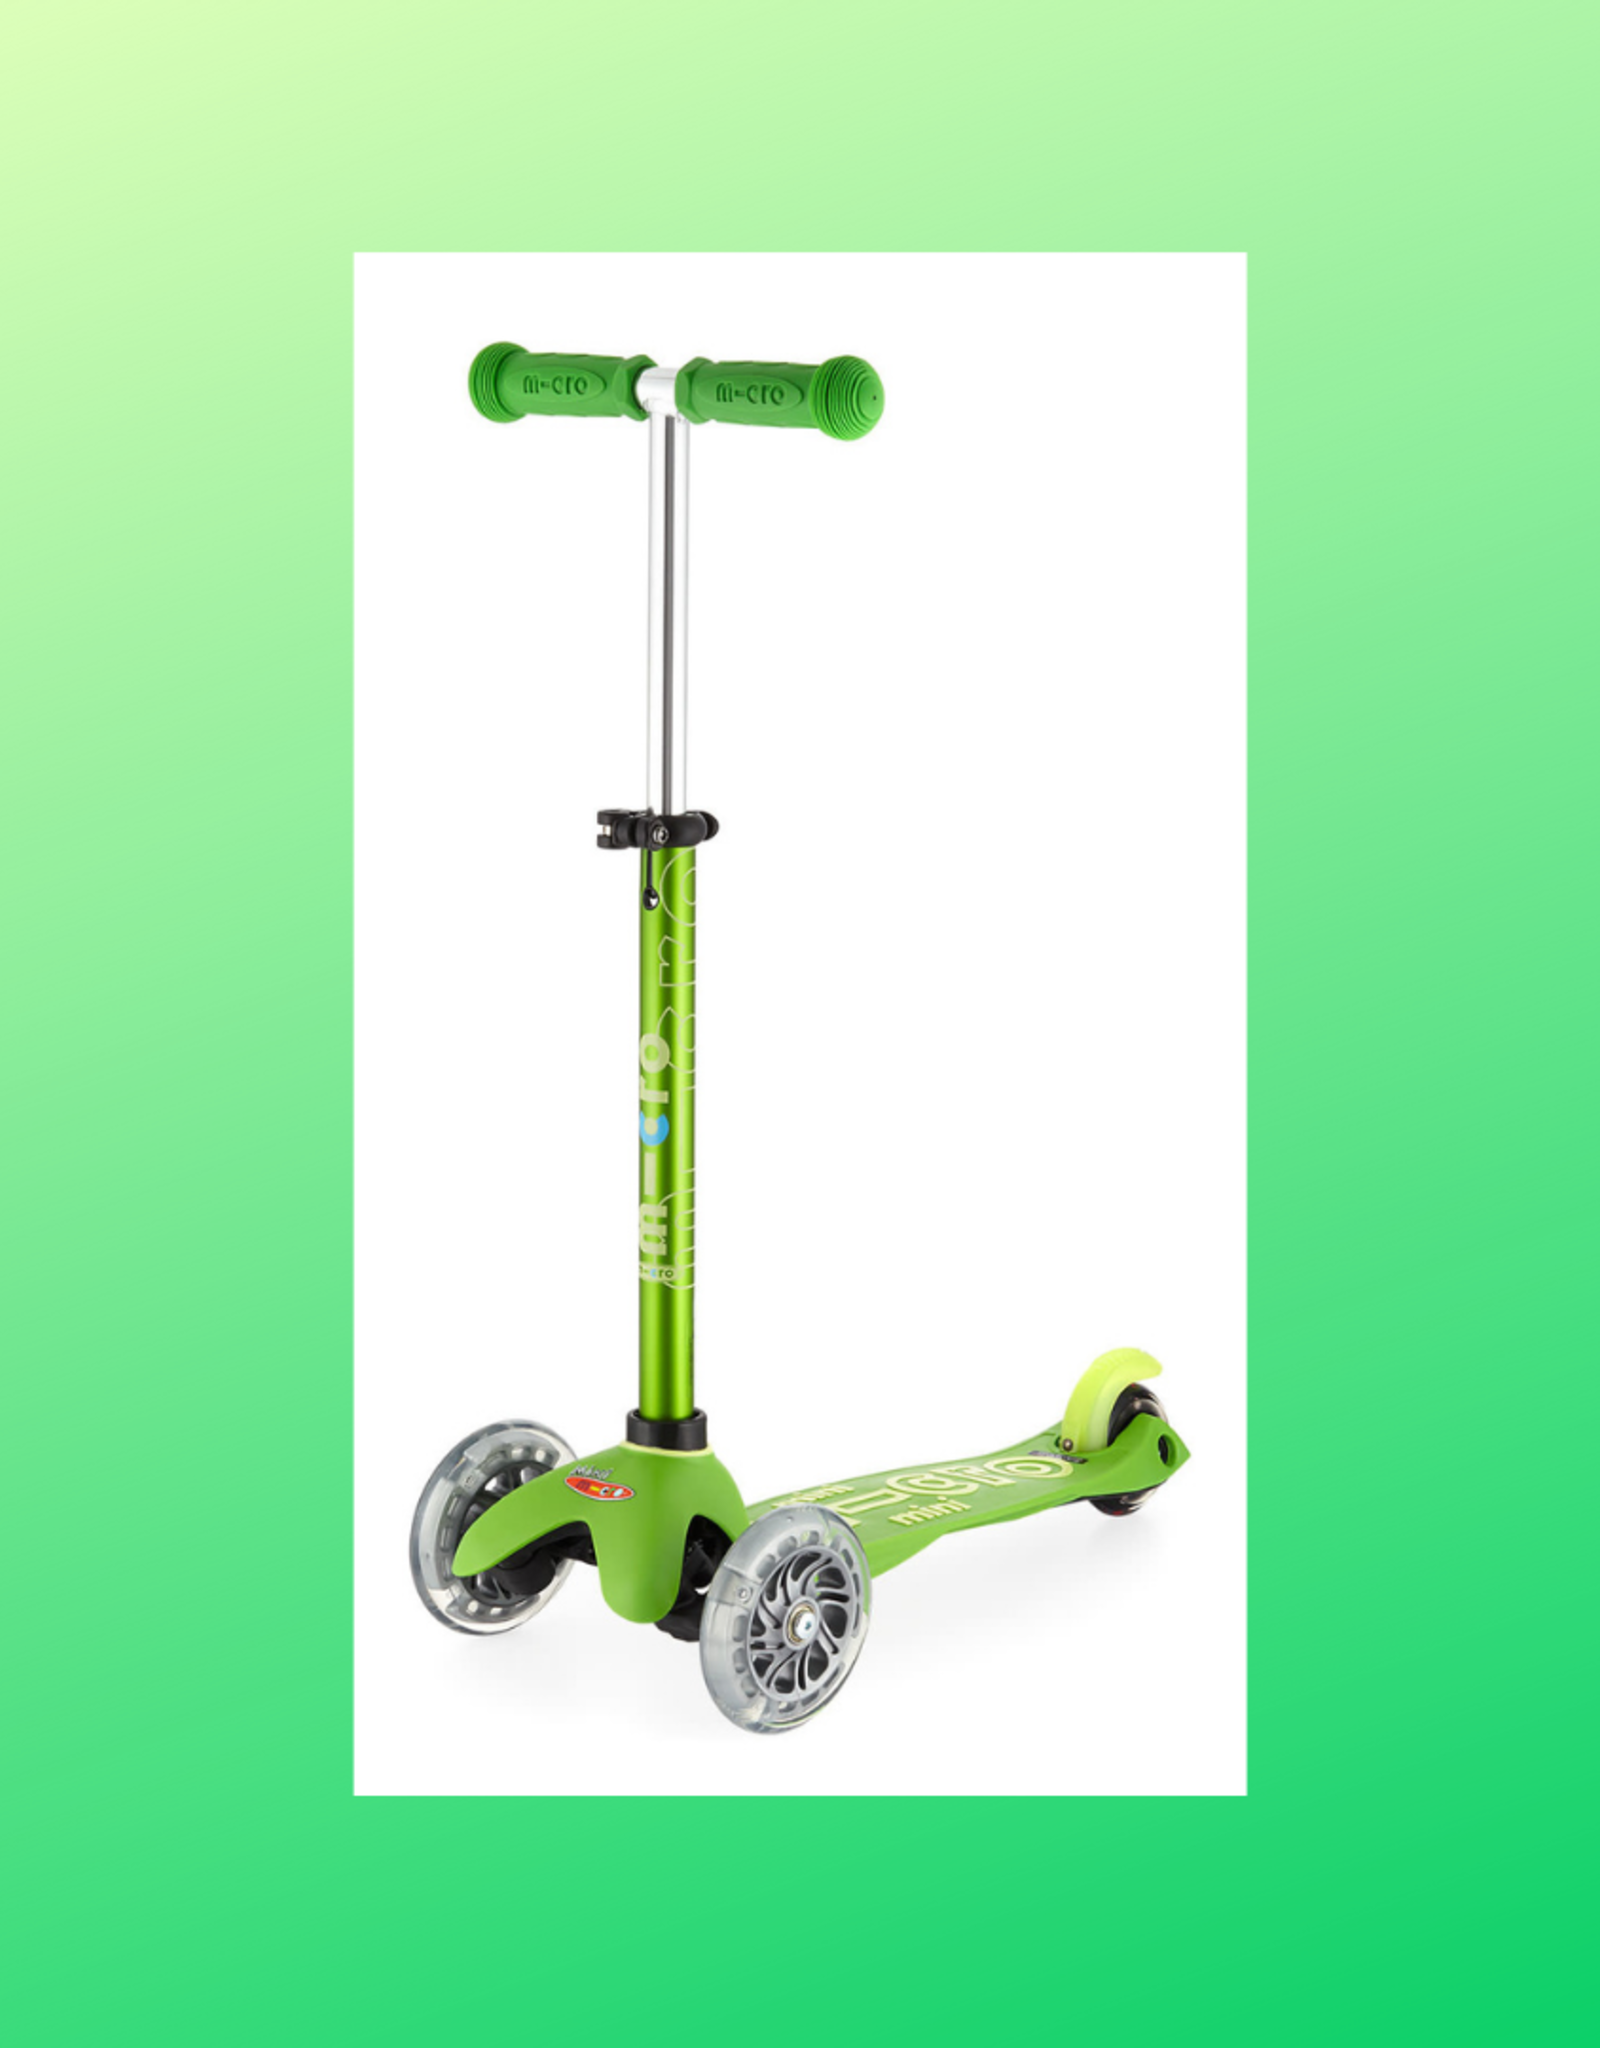 MICROSCOOTER MINI MICRO LED  GREEN SCOOTER